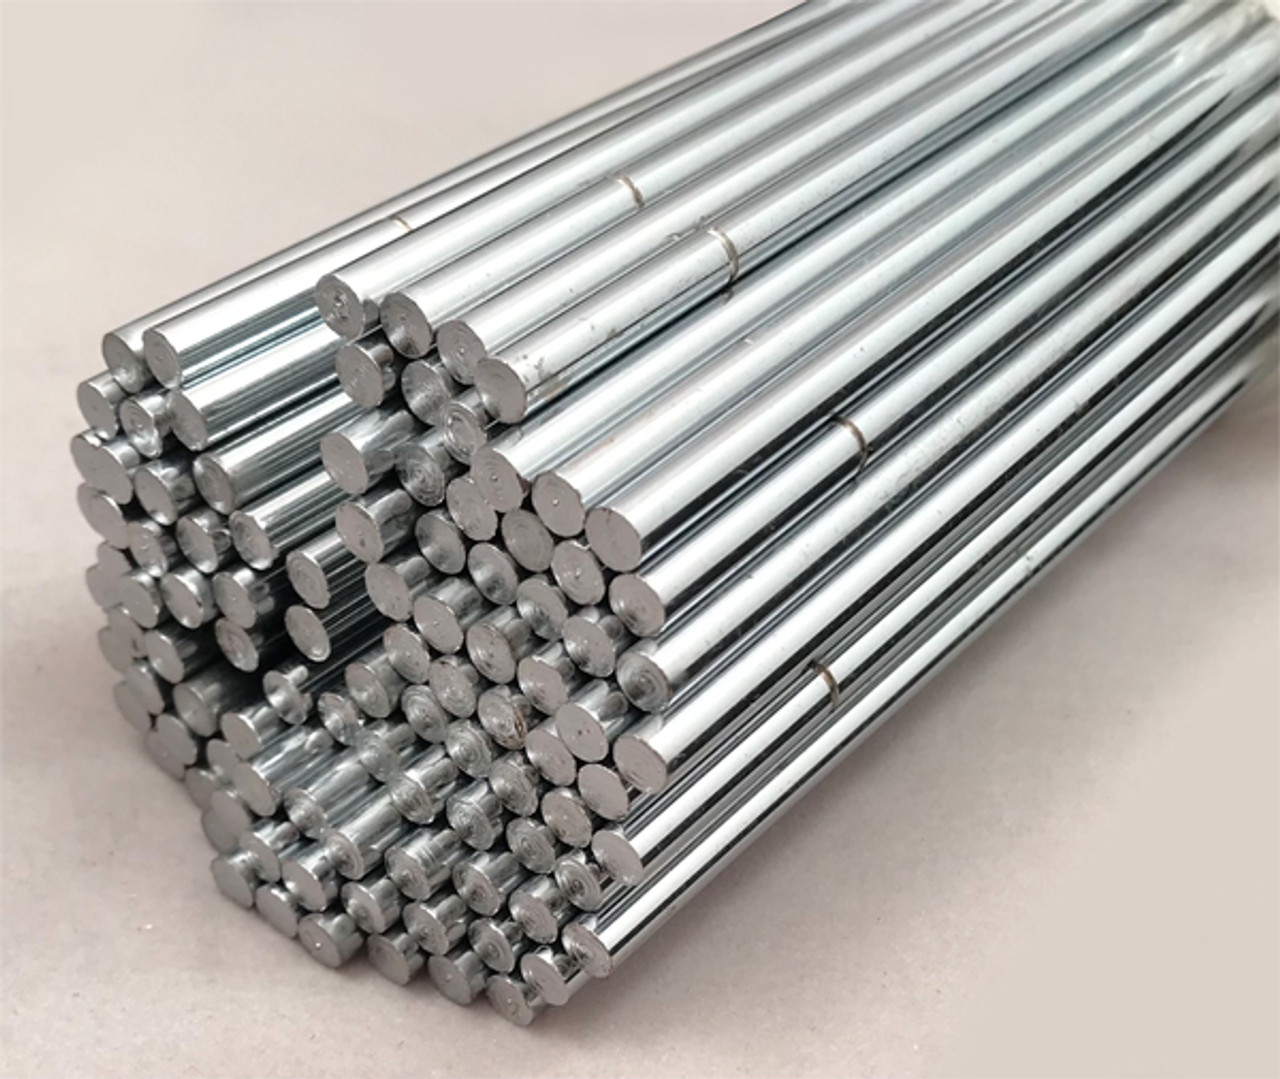 Soft Iron Rod is available in wholesale quantities and discounts